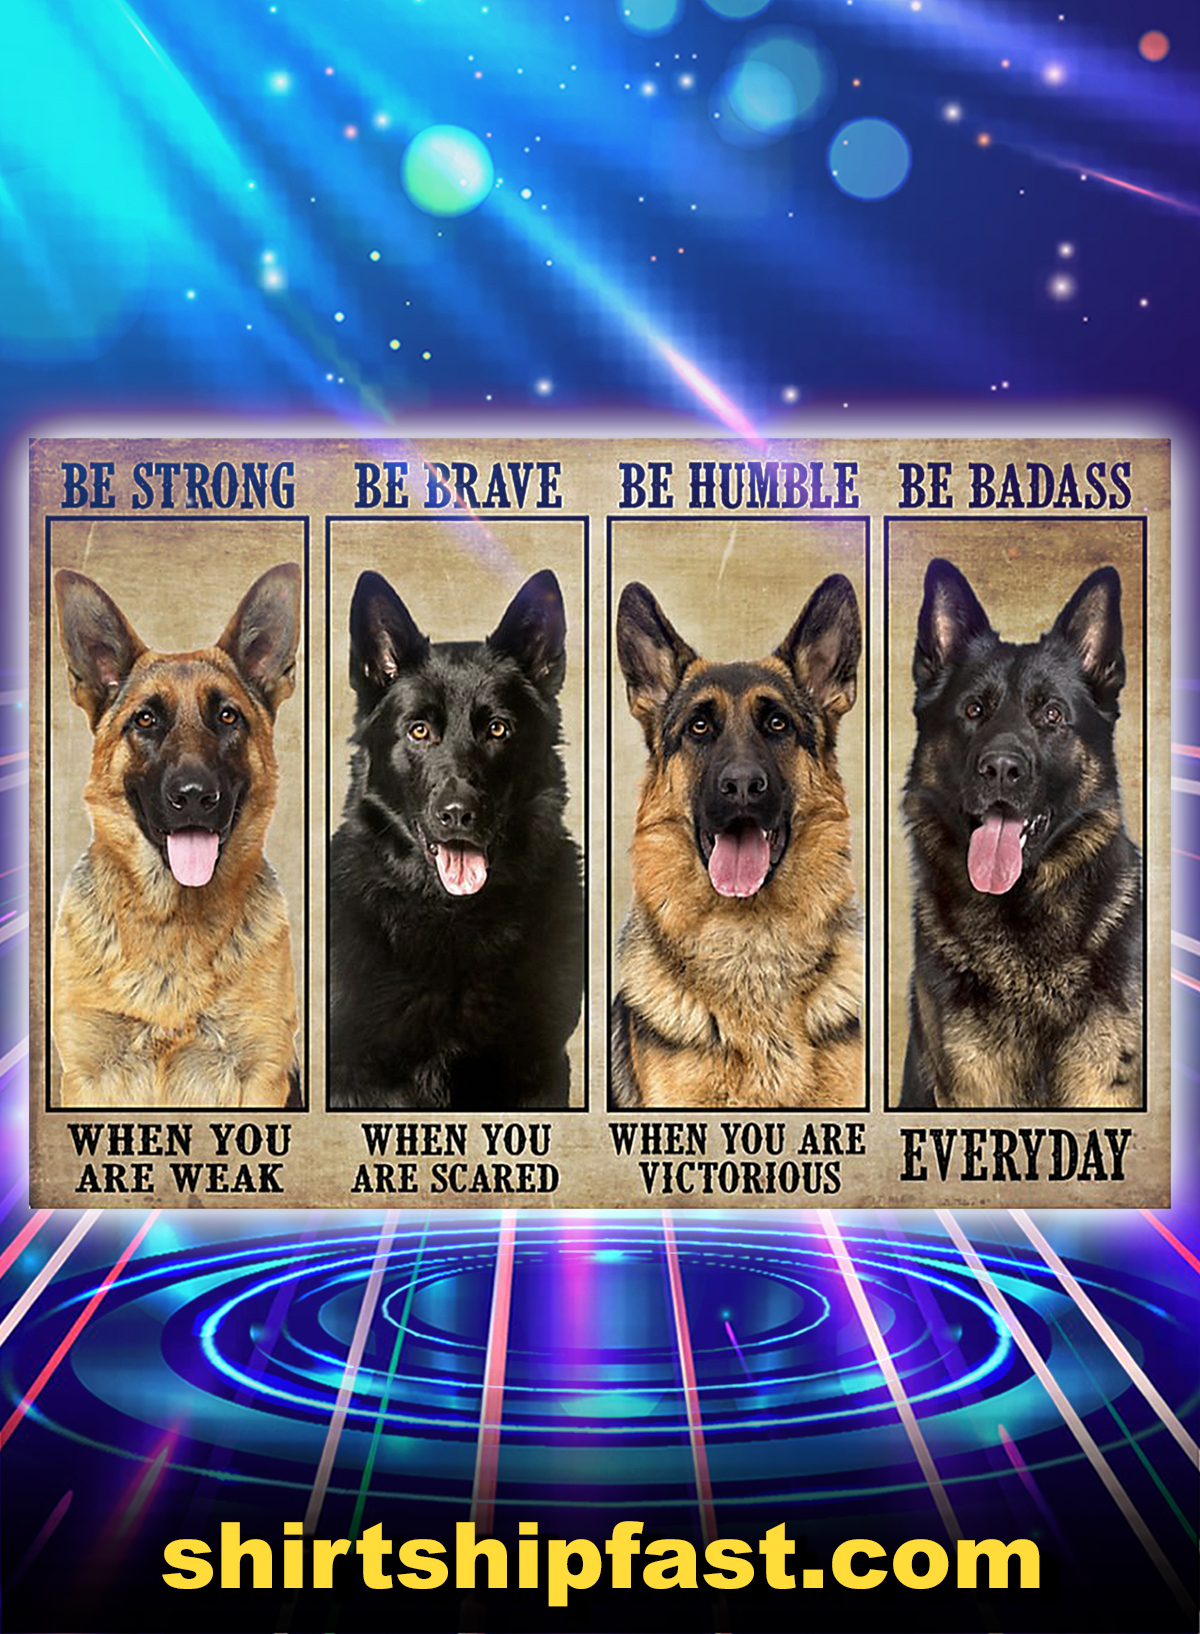 German Sherpherd be strong be brave be humble be badass poster - A4